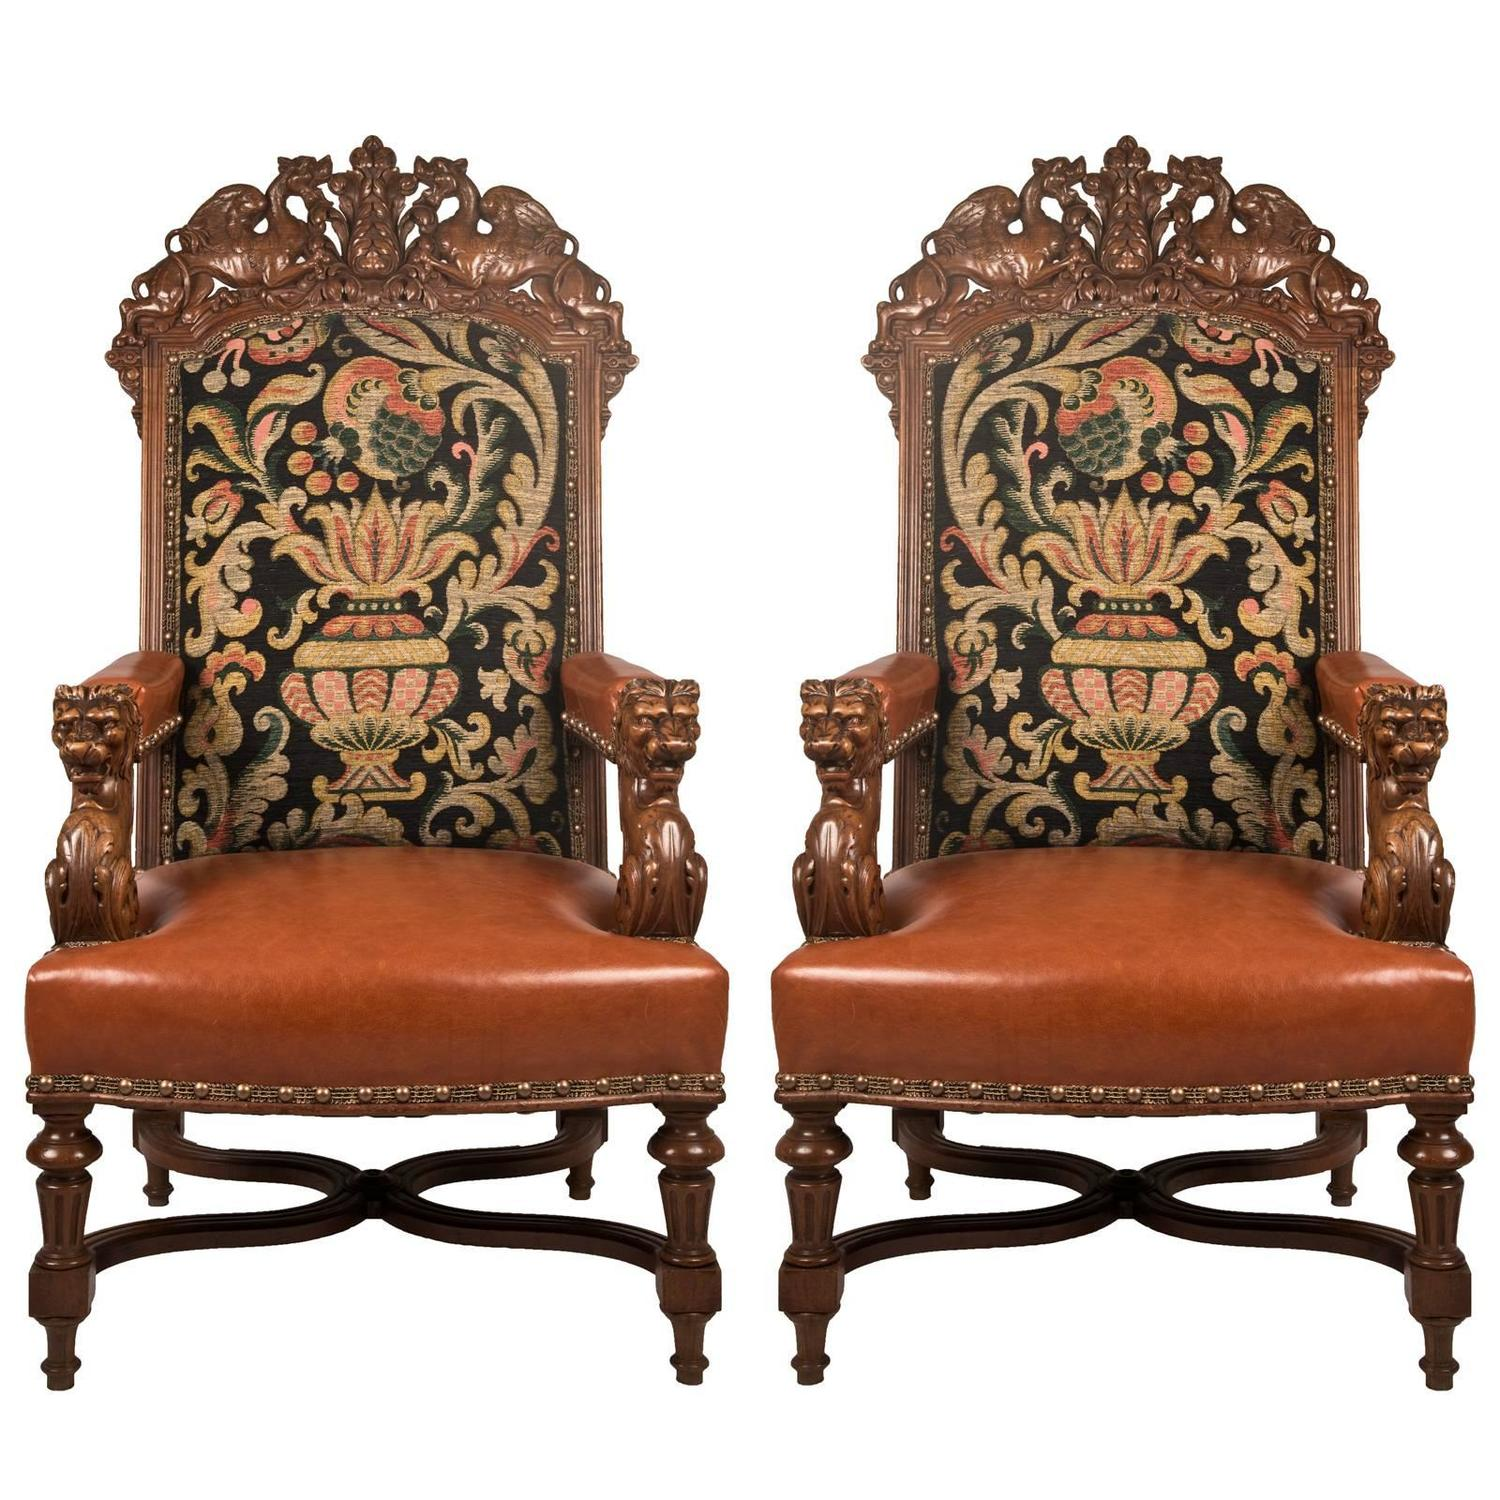 Louis The 14th Furniture Pair Of 19th Century Louis Xiv Style Fauteuil Walnut